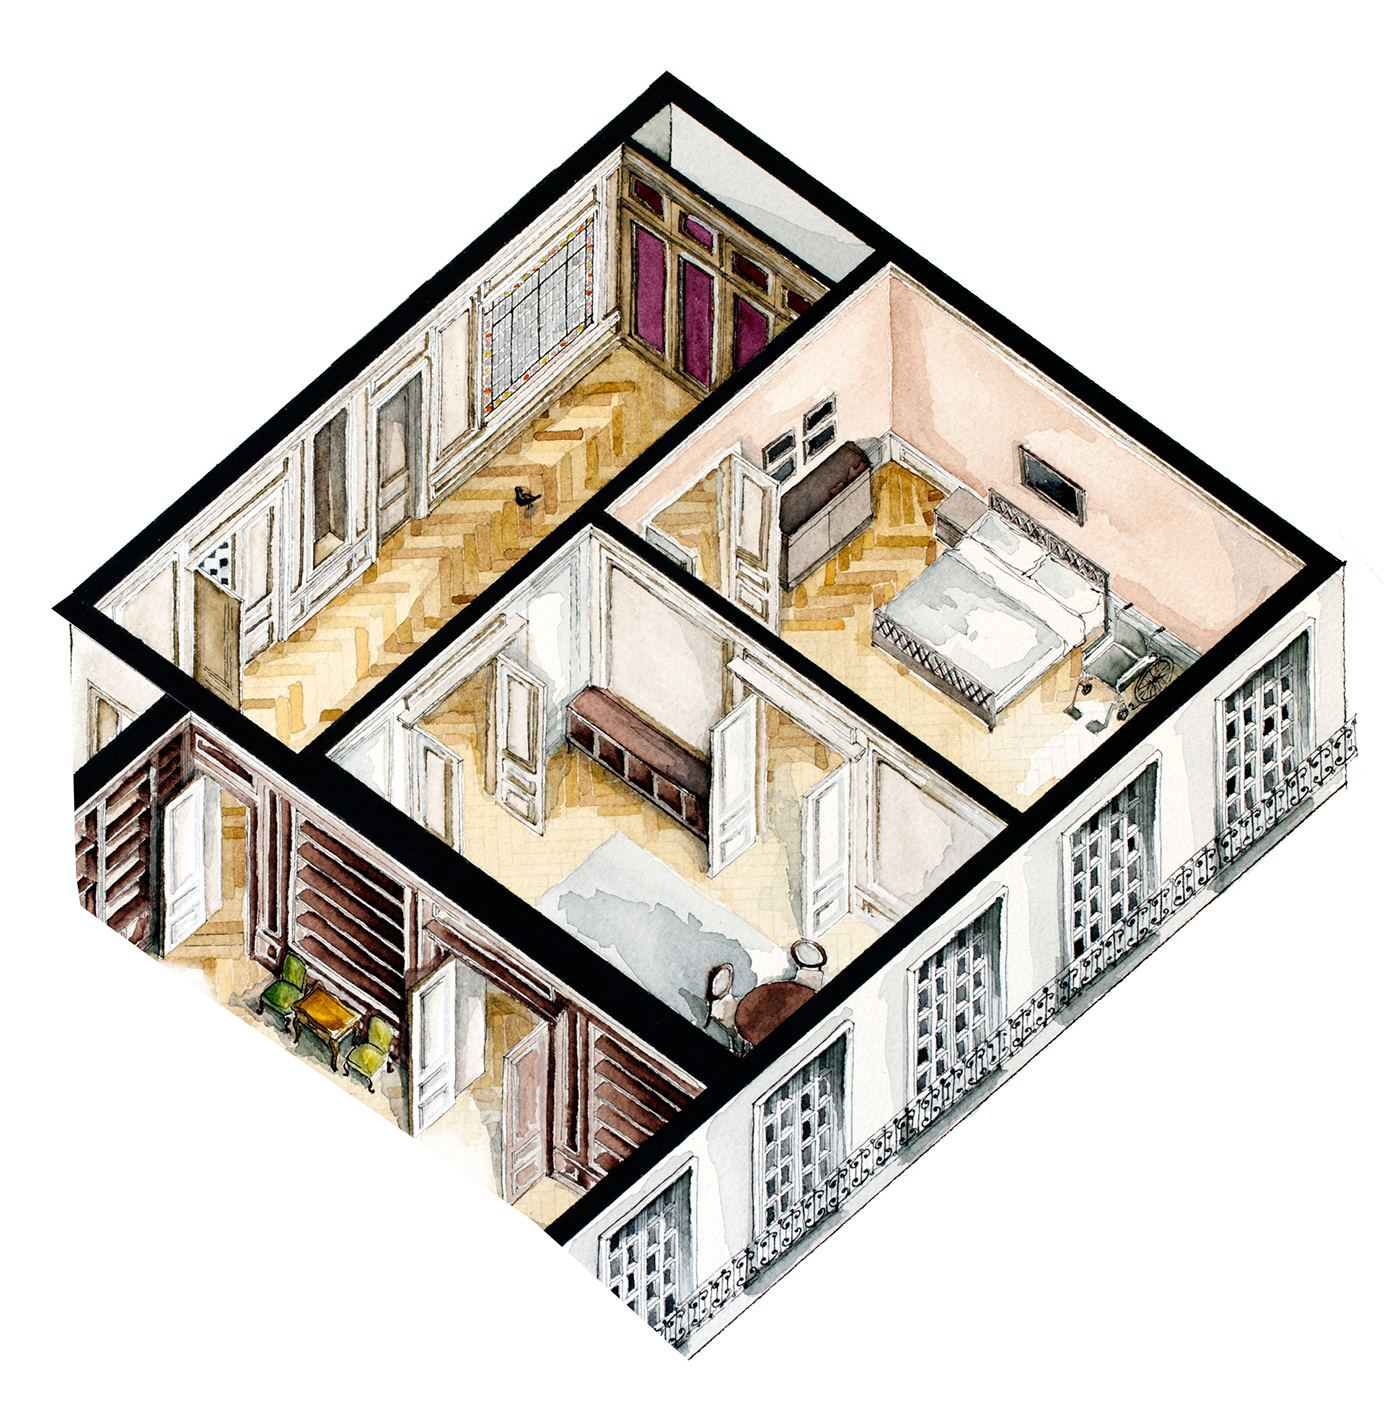 Amour Movie Floor Plan - Watercolor floorplans from recent television shows and films